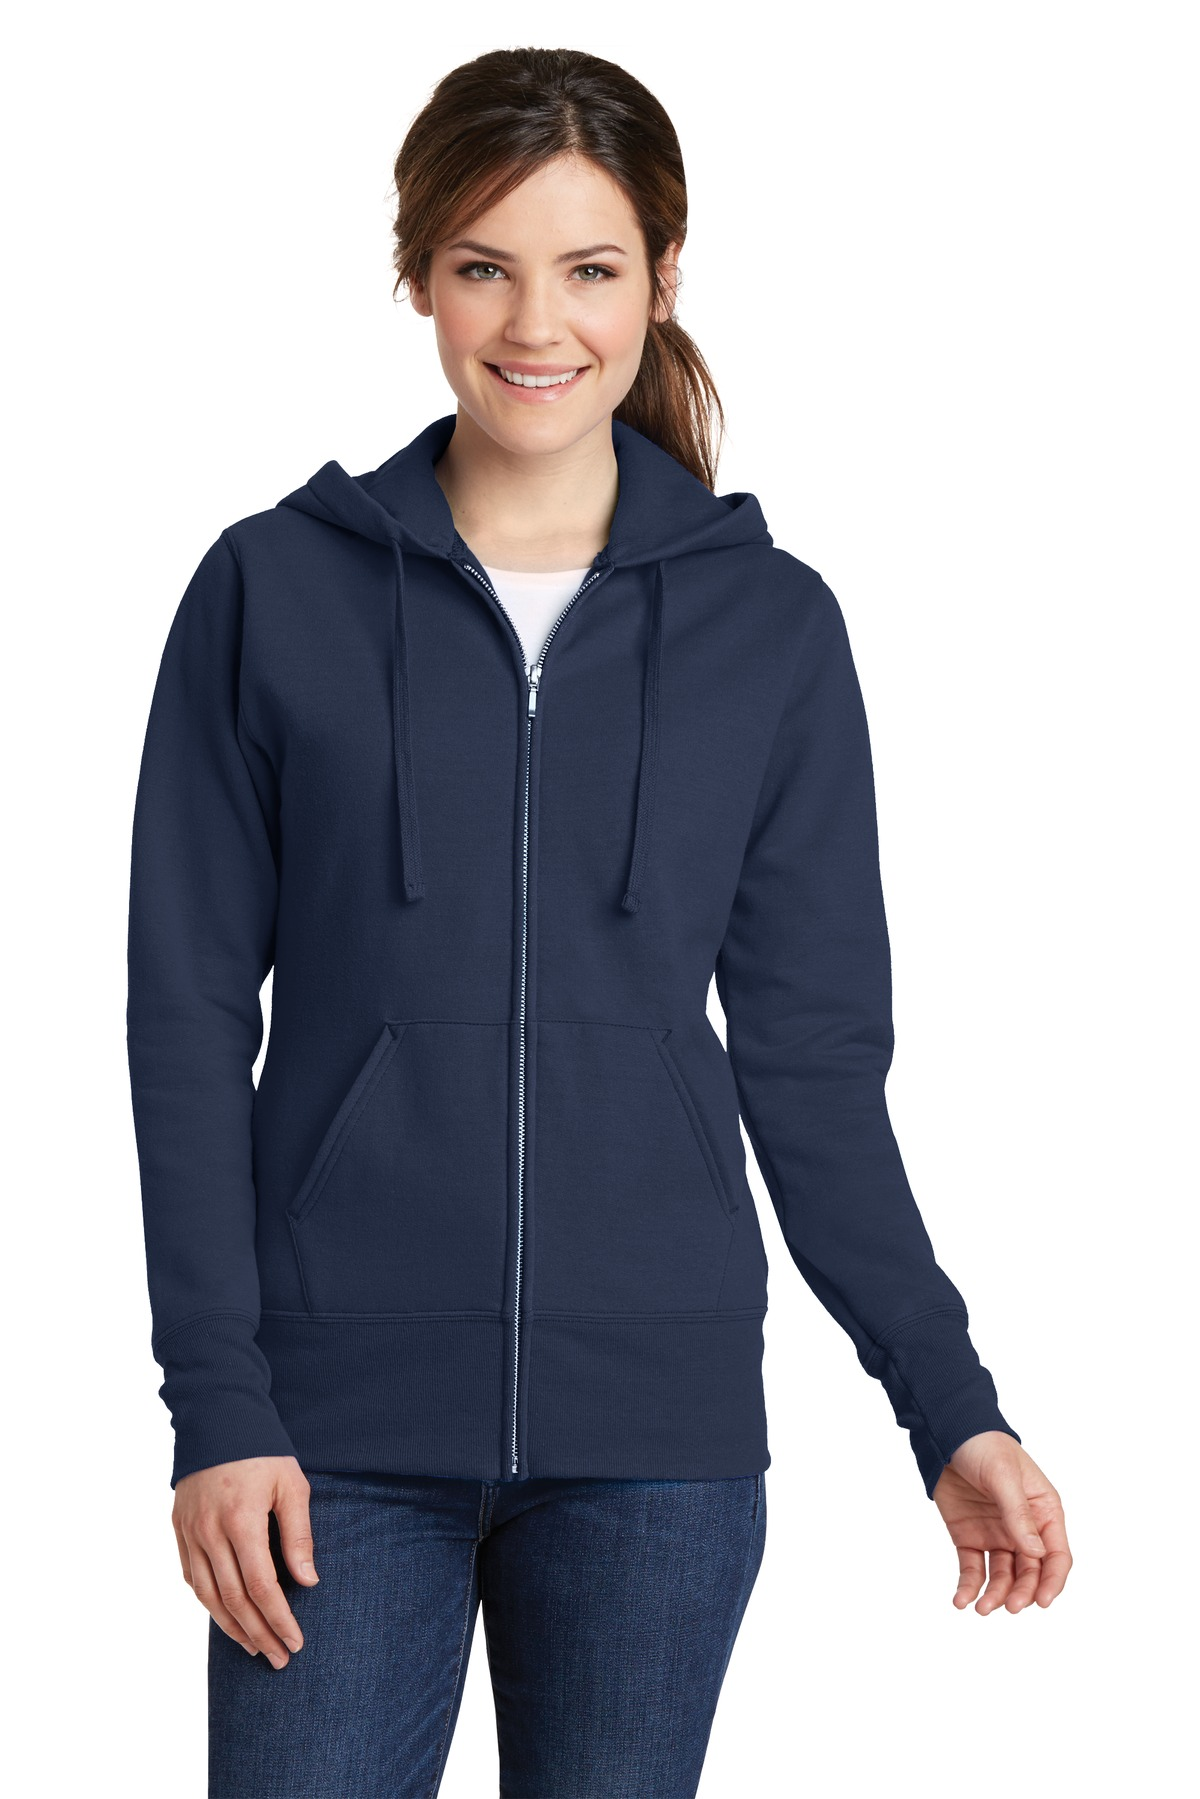 Port & Company ®  Ladies Core Fleece Full-Zip Hooded Sweatshirt. LPC78ZH - Navy